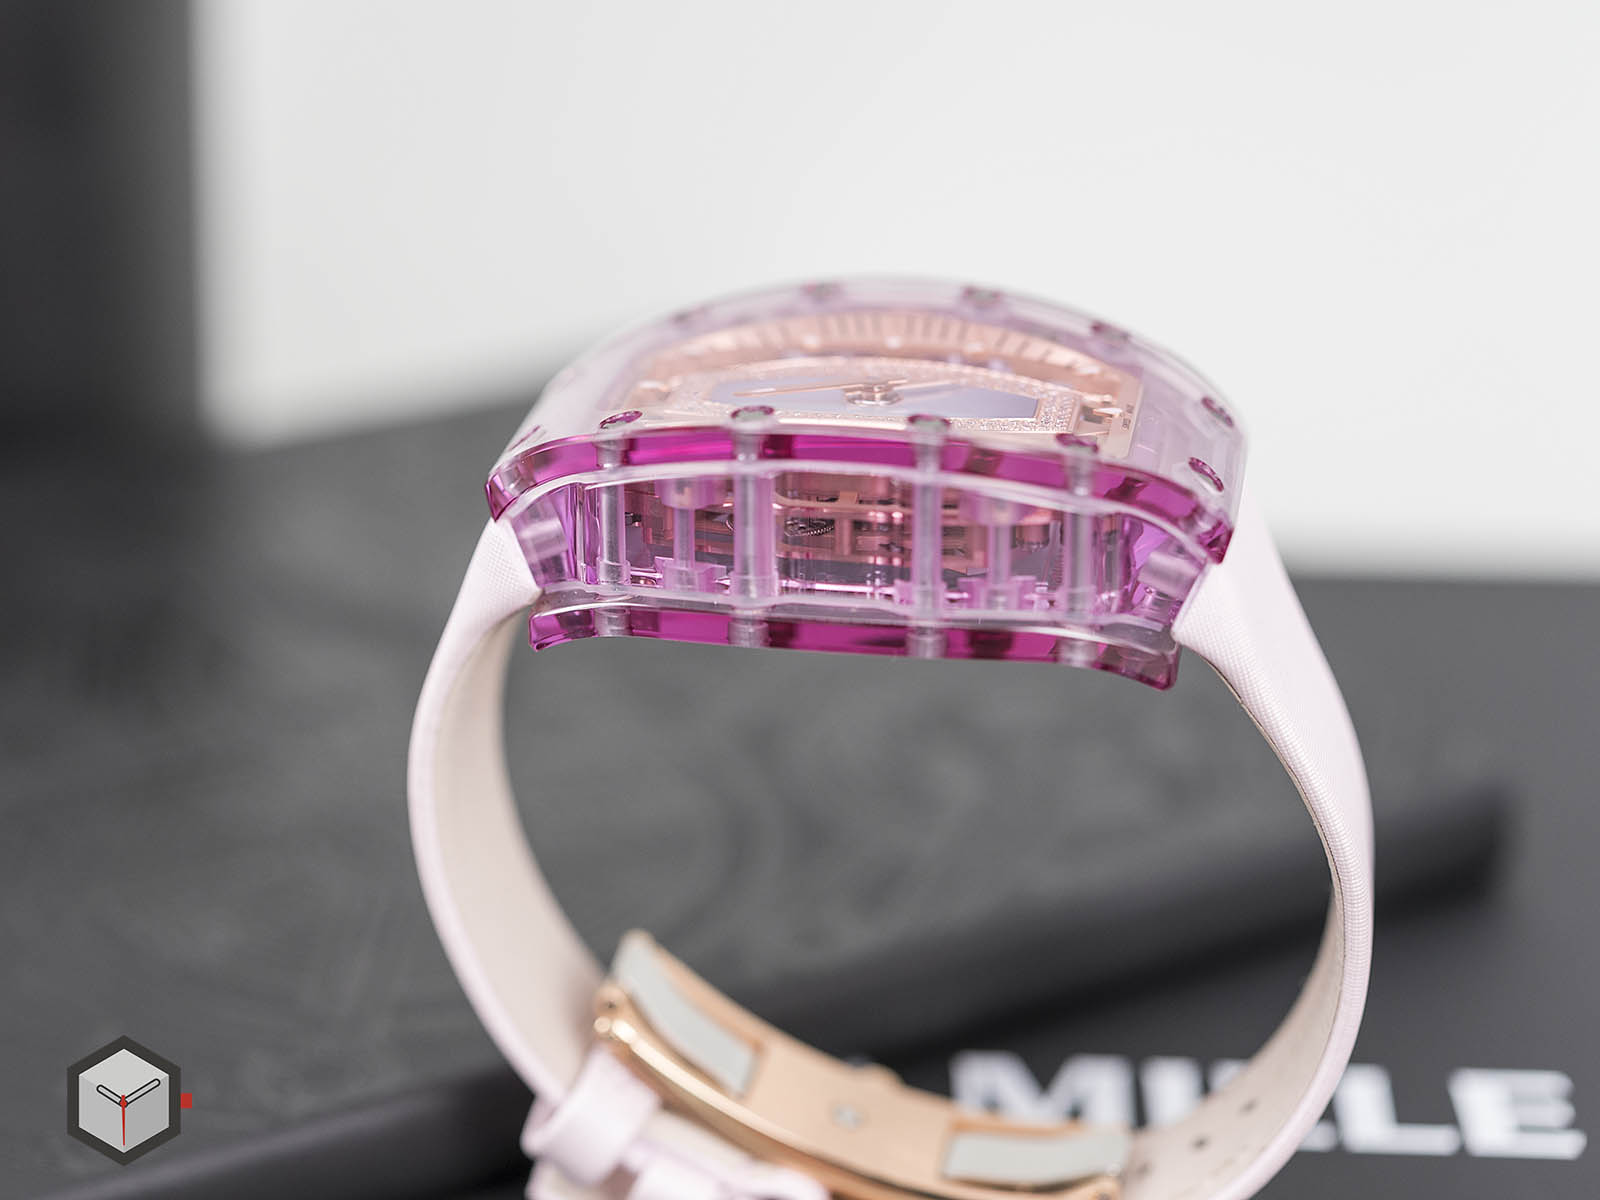 rm-07-02-richard-mille-automatic-pink-lady-sapphire-7.jpg